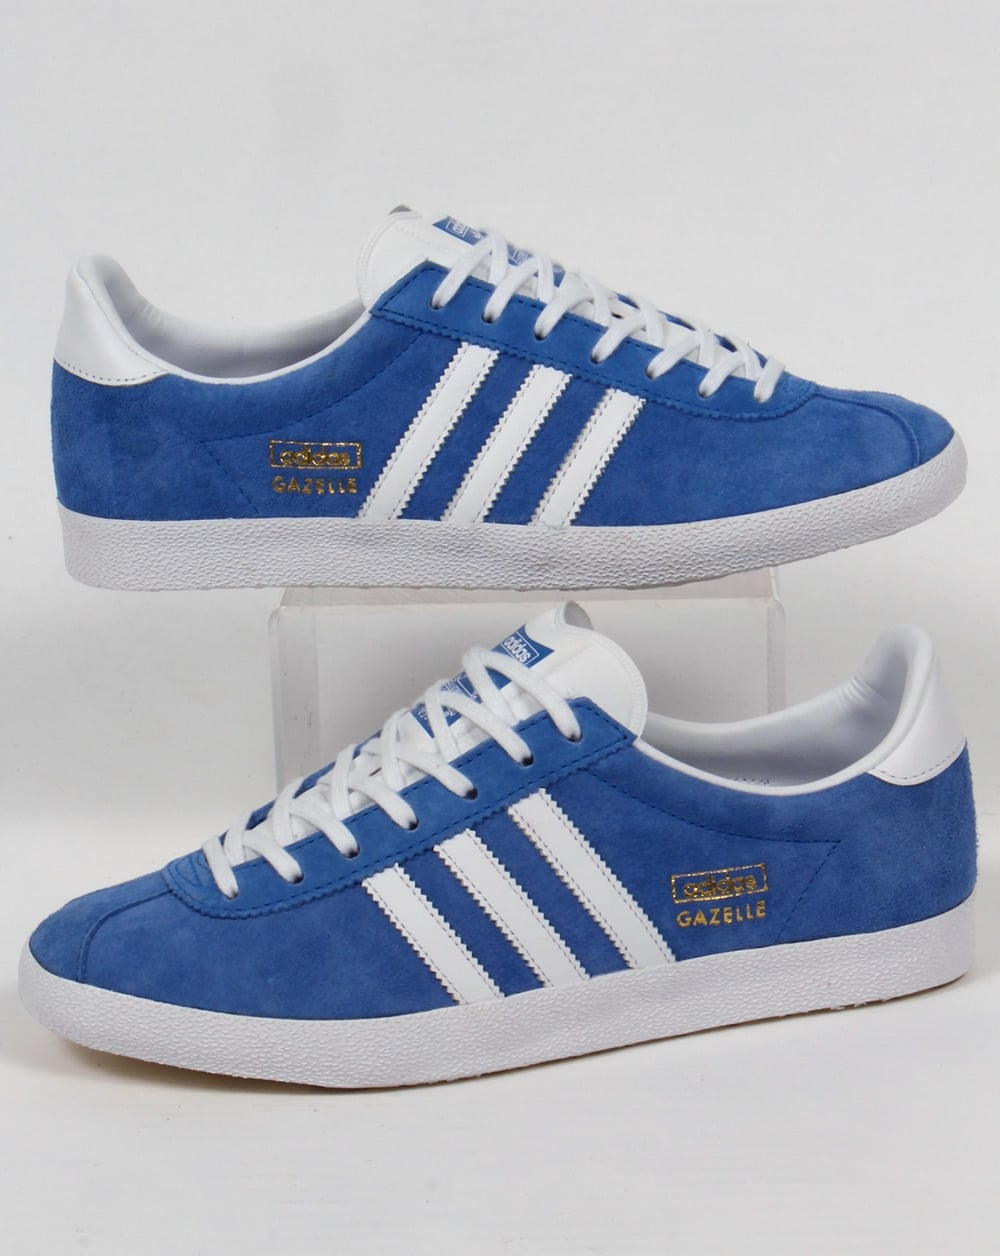 Adidas Gazelle OG Trainers Airforce Bluewhite